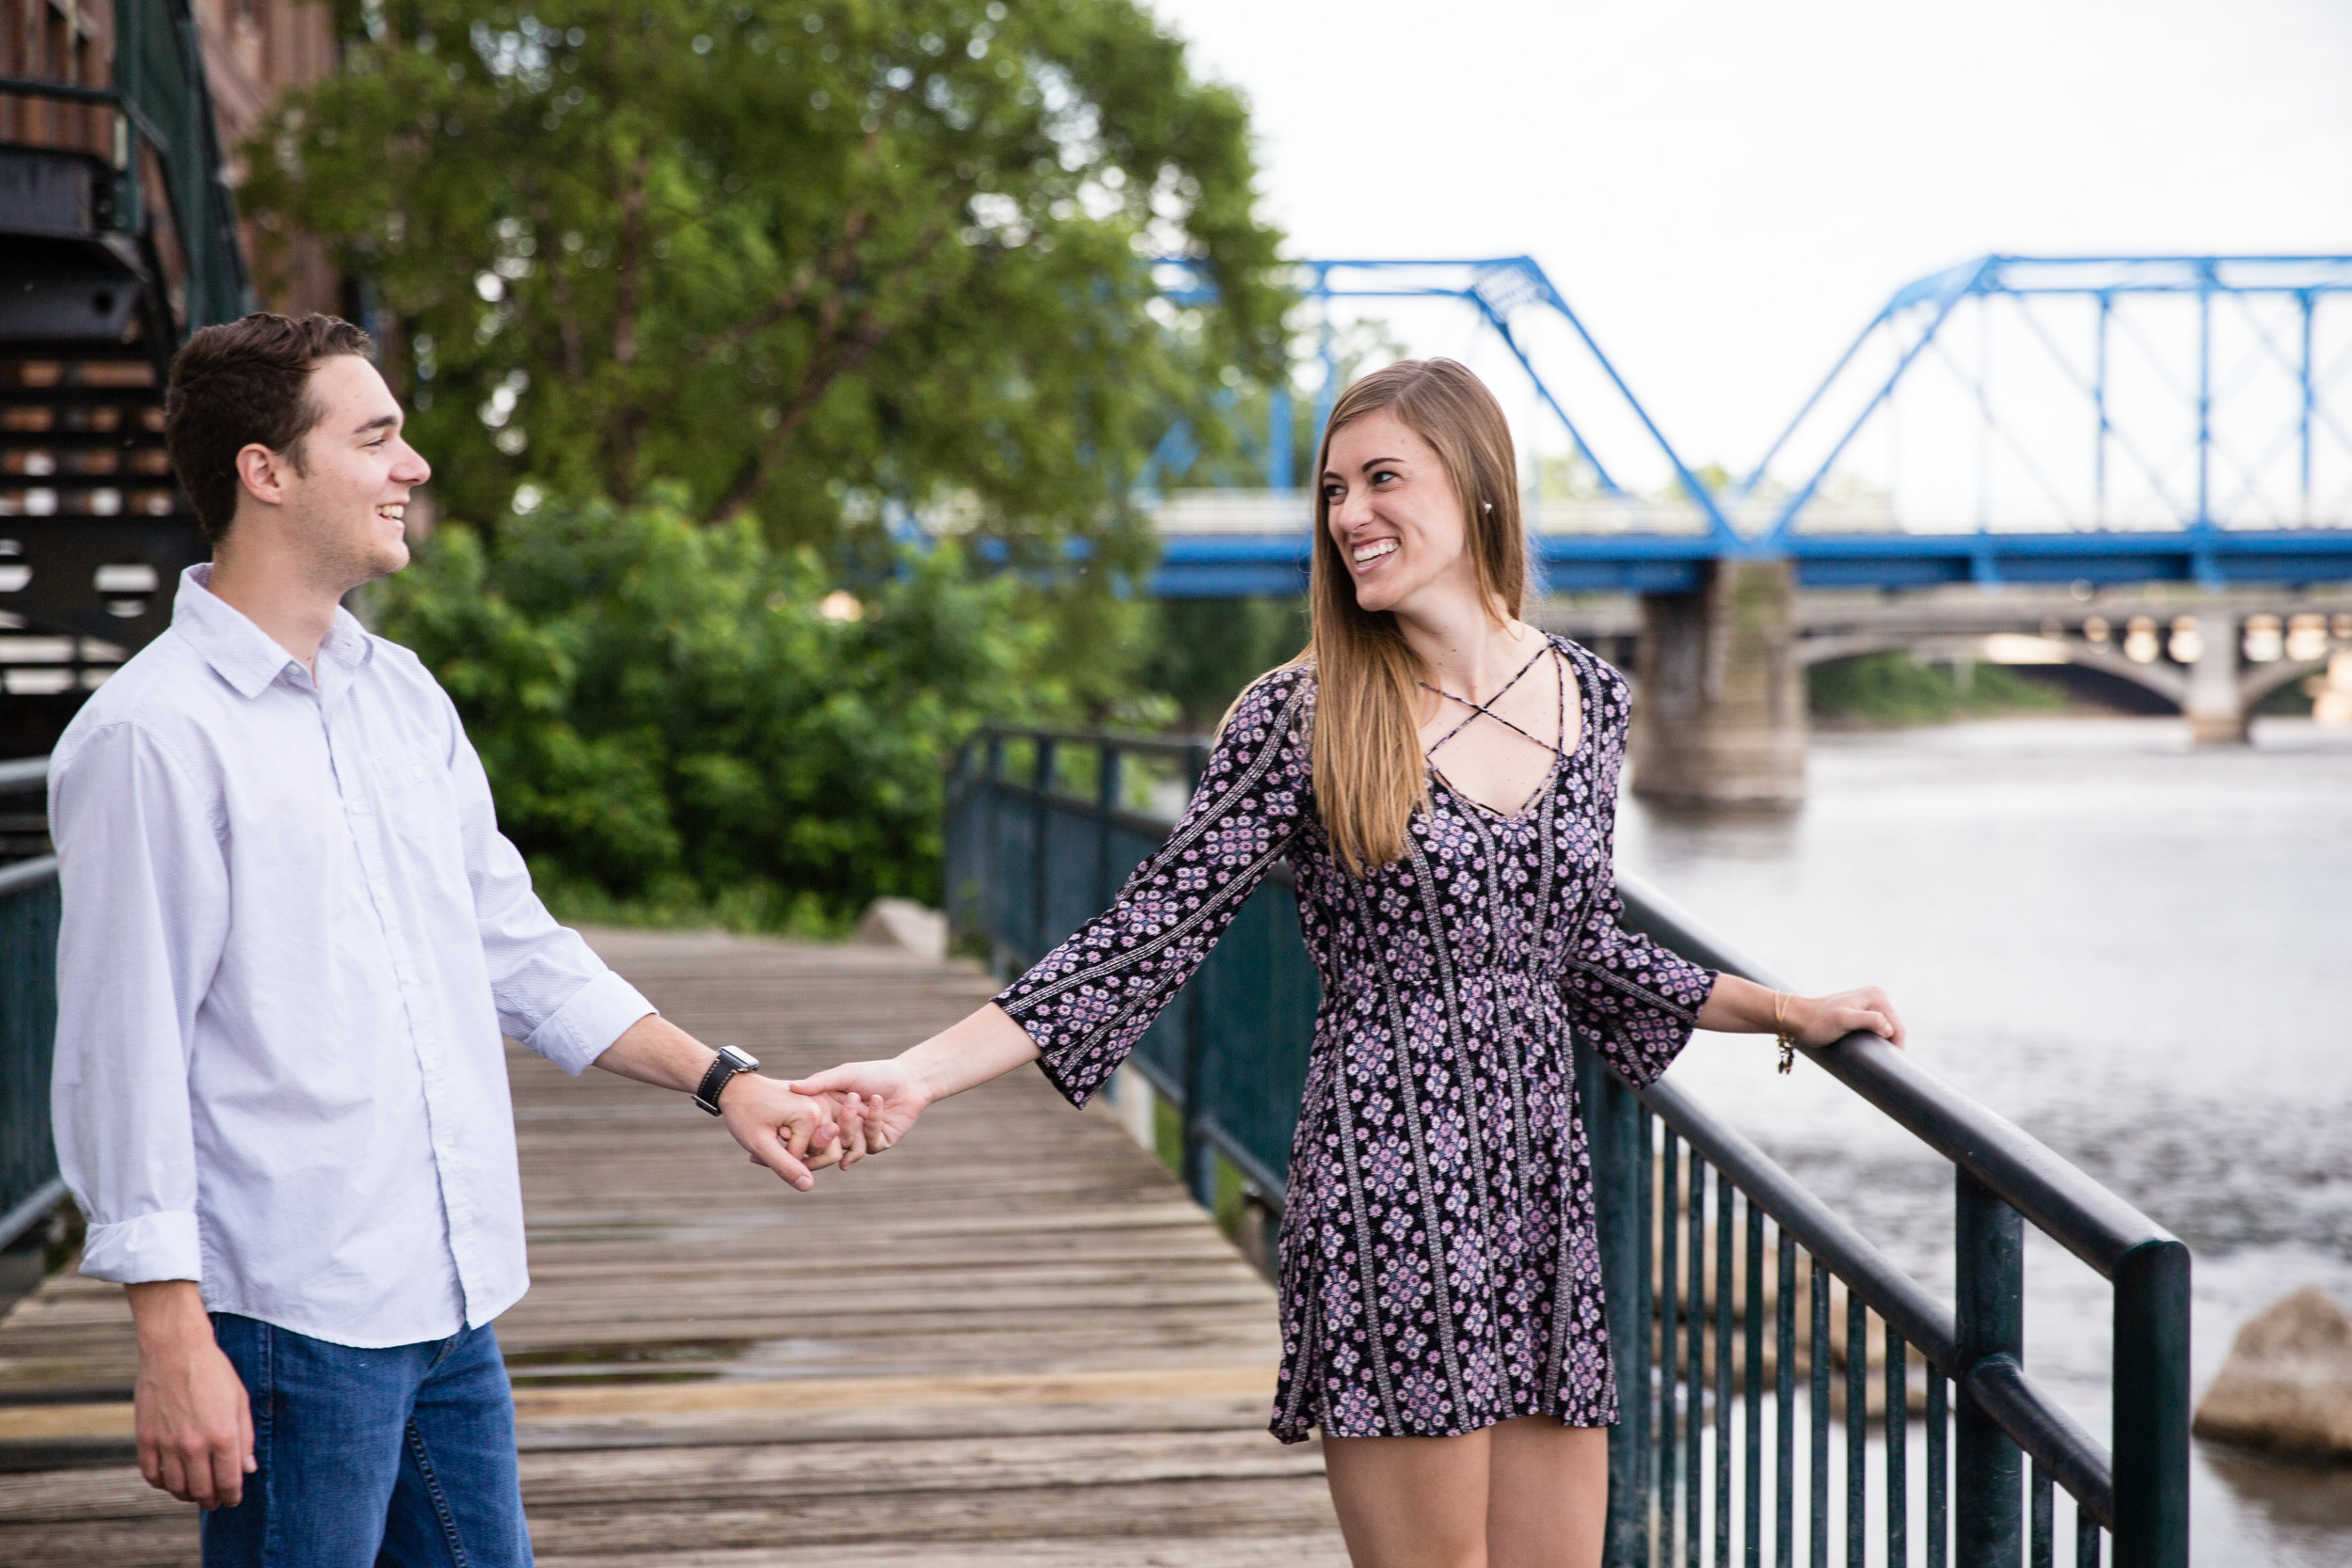 Fun Grand Rapids Couple Holding Hands_Tania Howard Photography.jpg